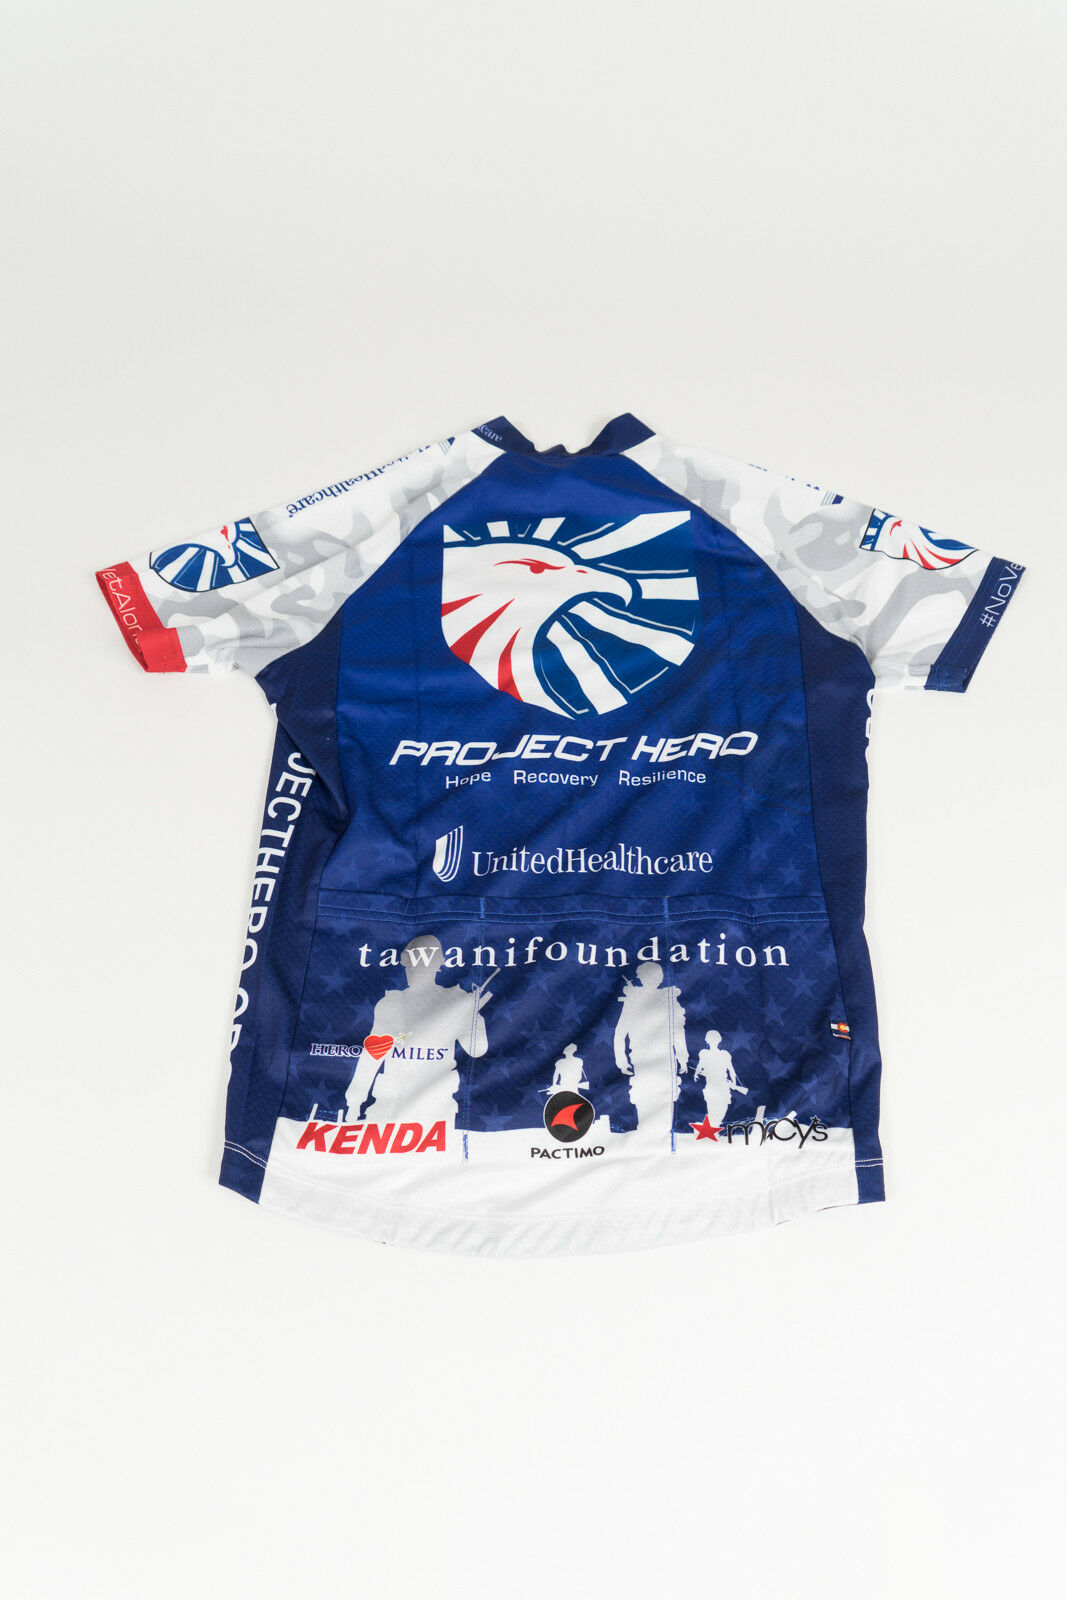 New Men's Pactimo Project Hero USO Continental SS Cycling Jersey, bluee, Size M